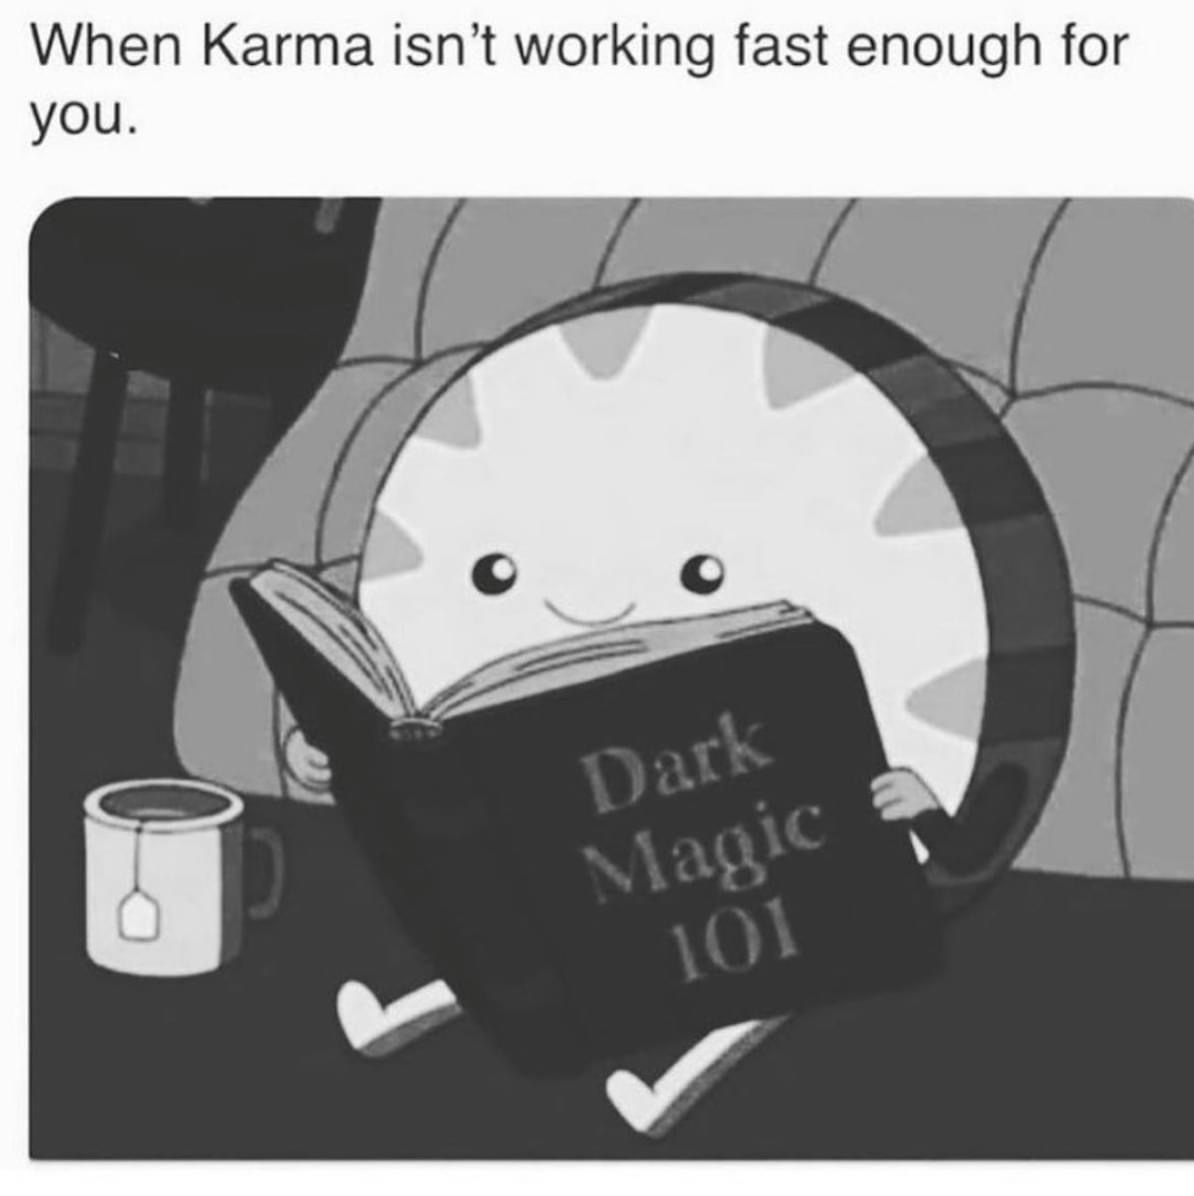 When karma isn't working fast enough for you meme